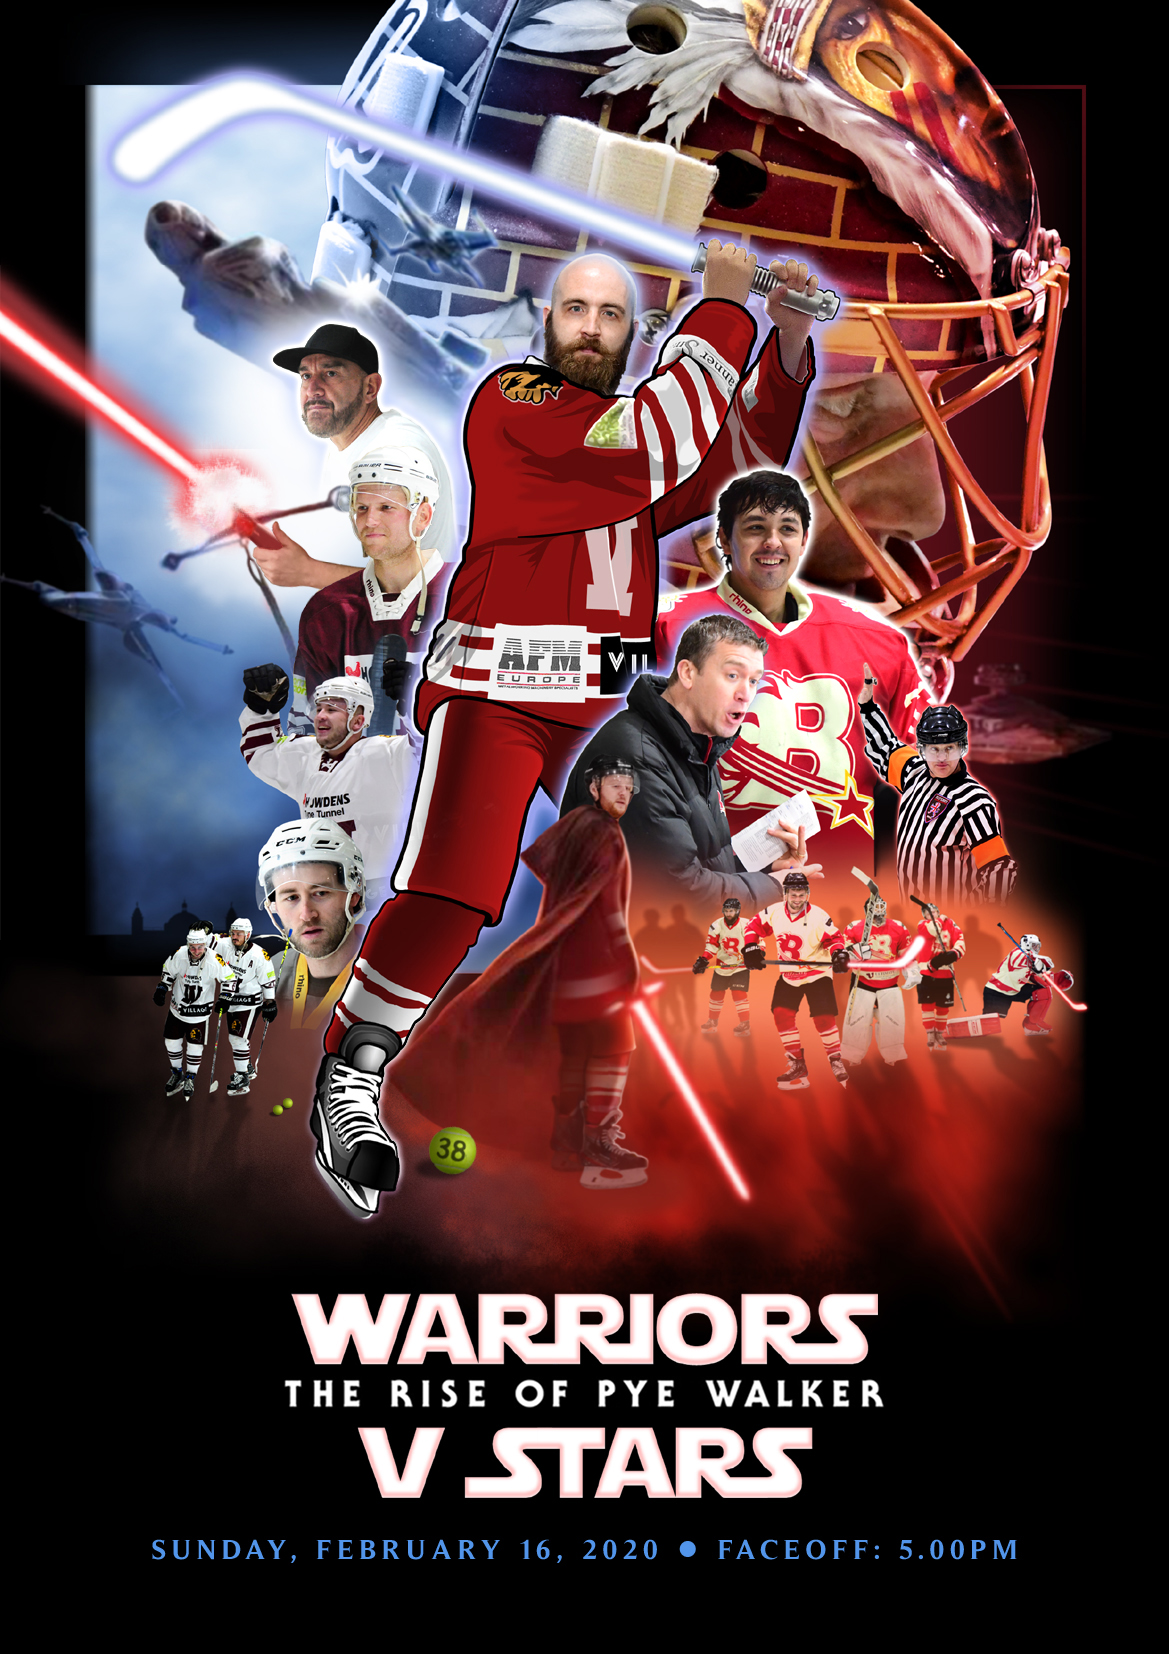 Whitley Warriors vs Billingham Stars @ Whitley Bay Ice Rink, Sunday 16 February 2020, face off 5pm